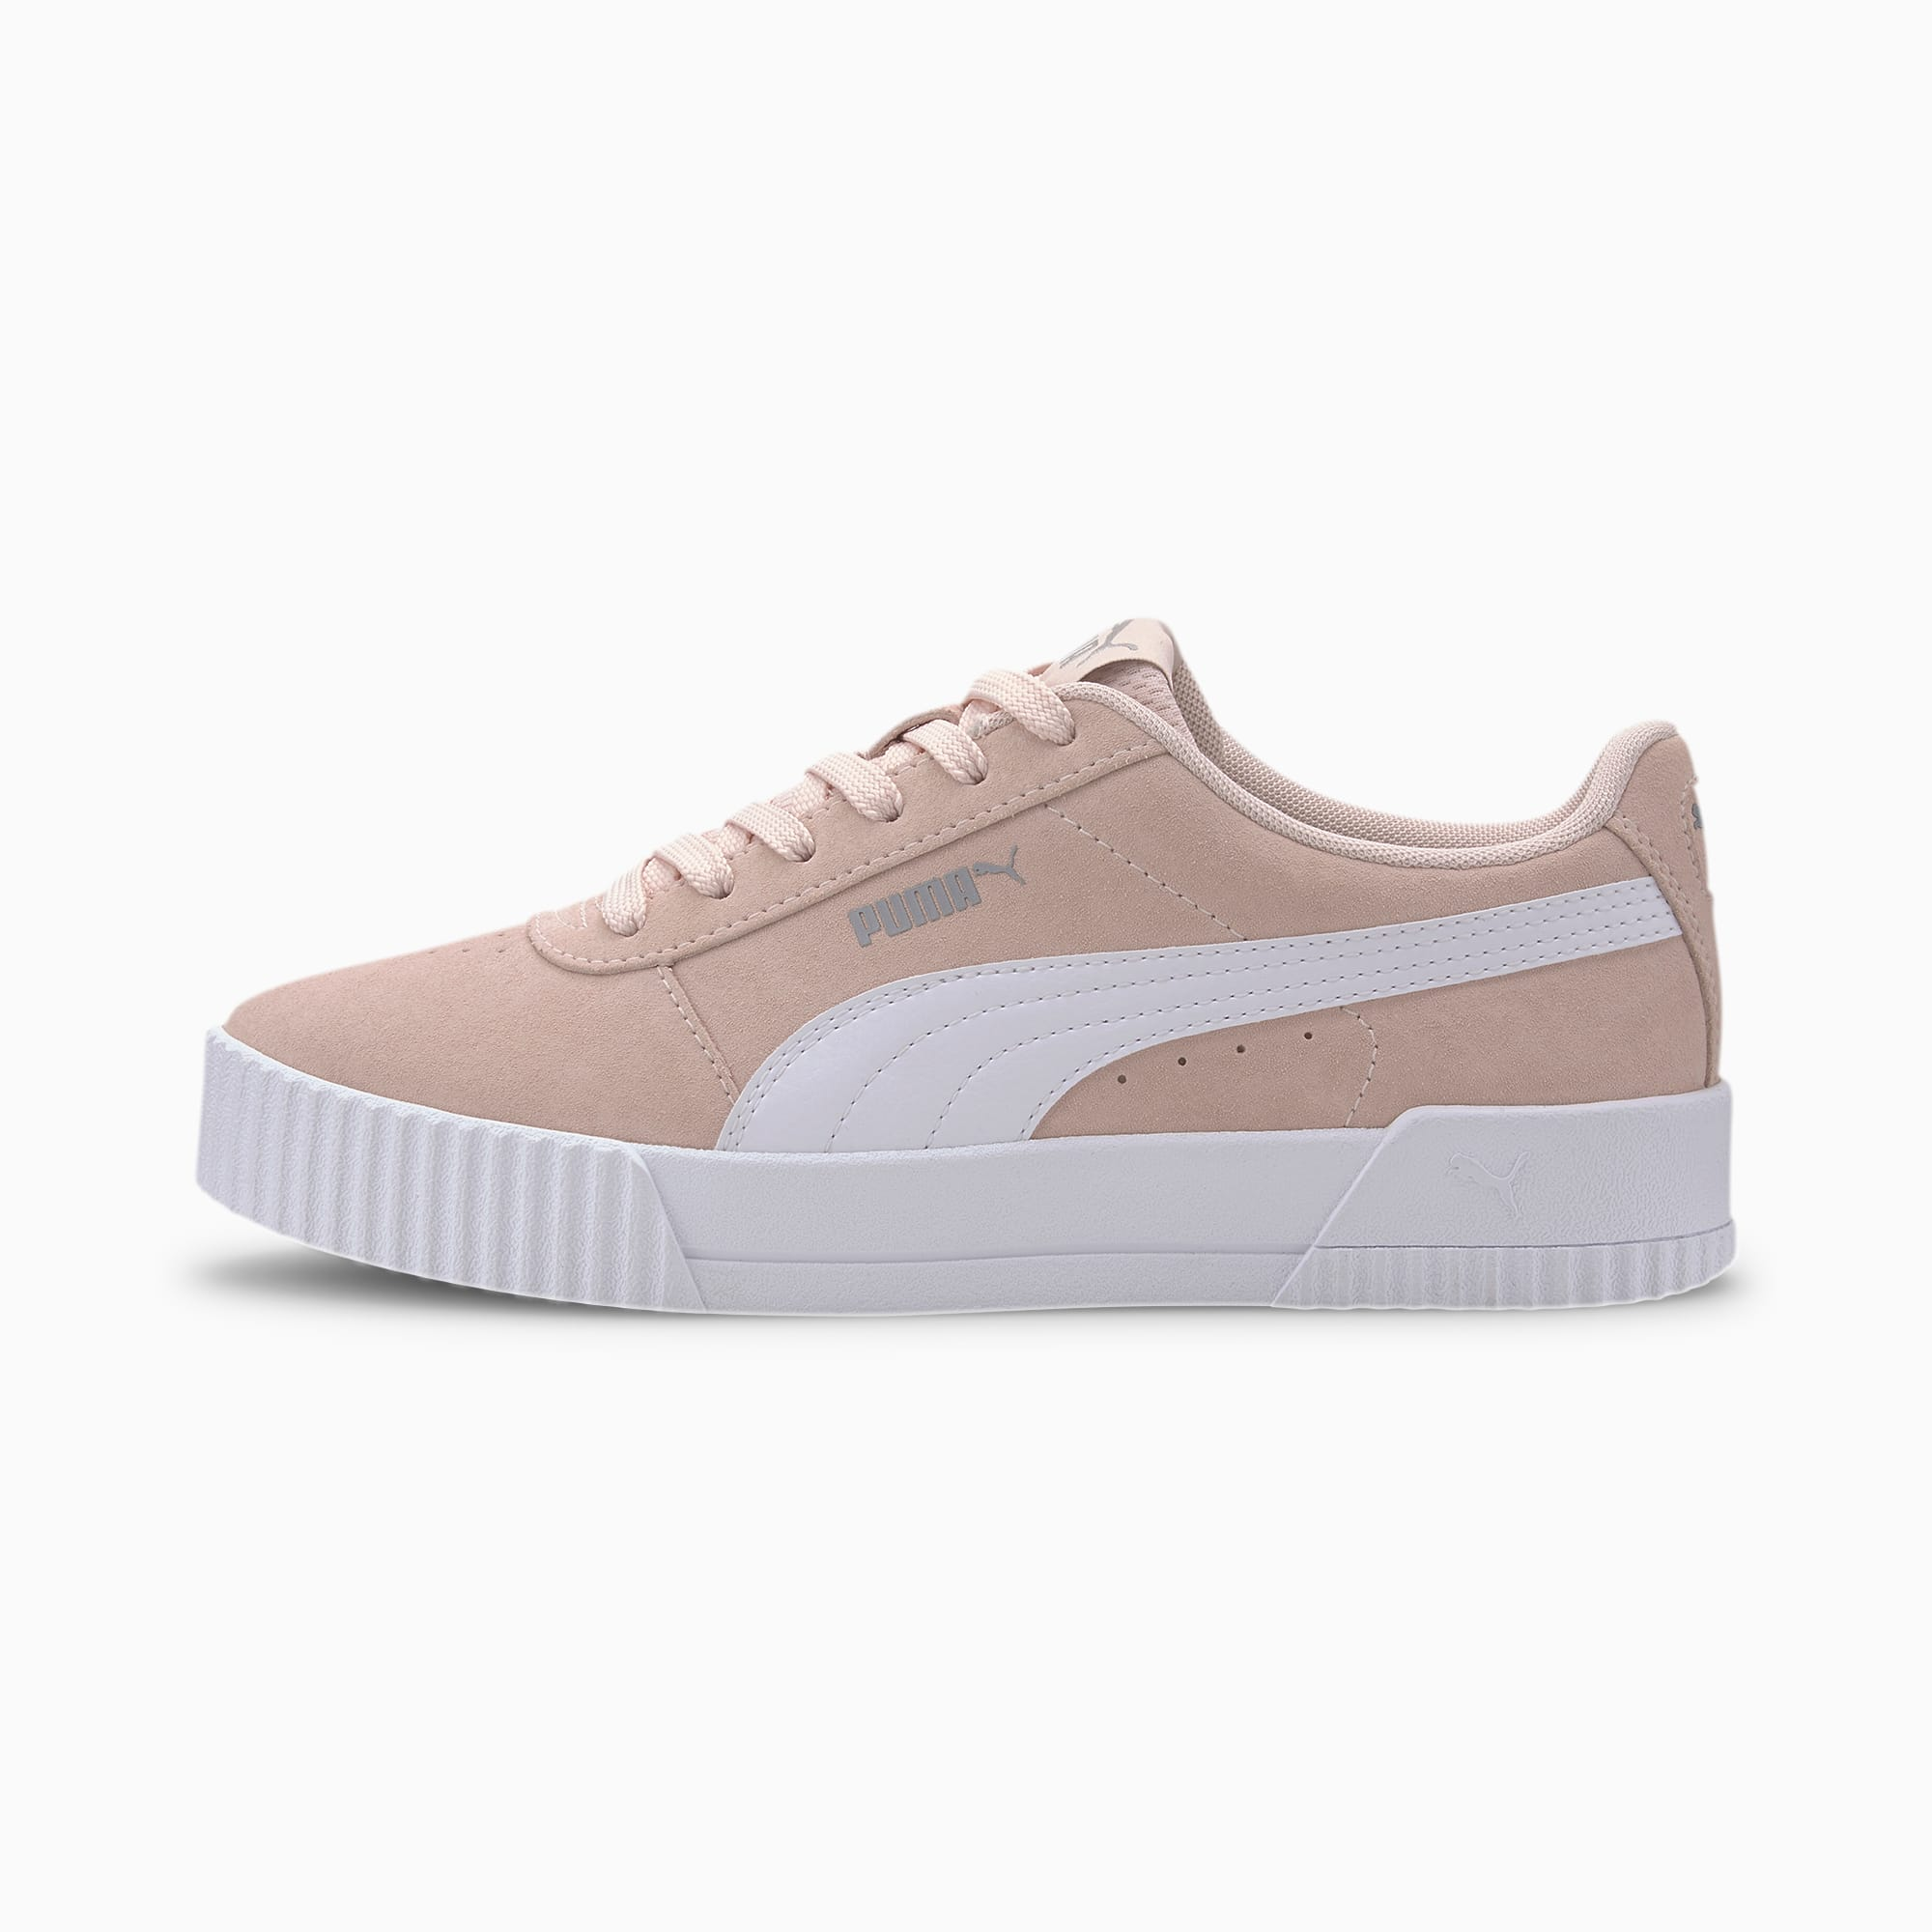 Carina Suede Women's Trainers